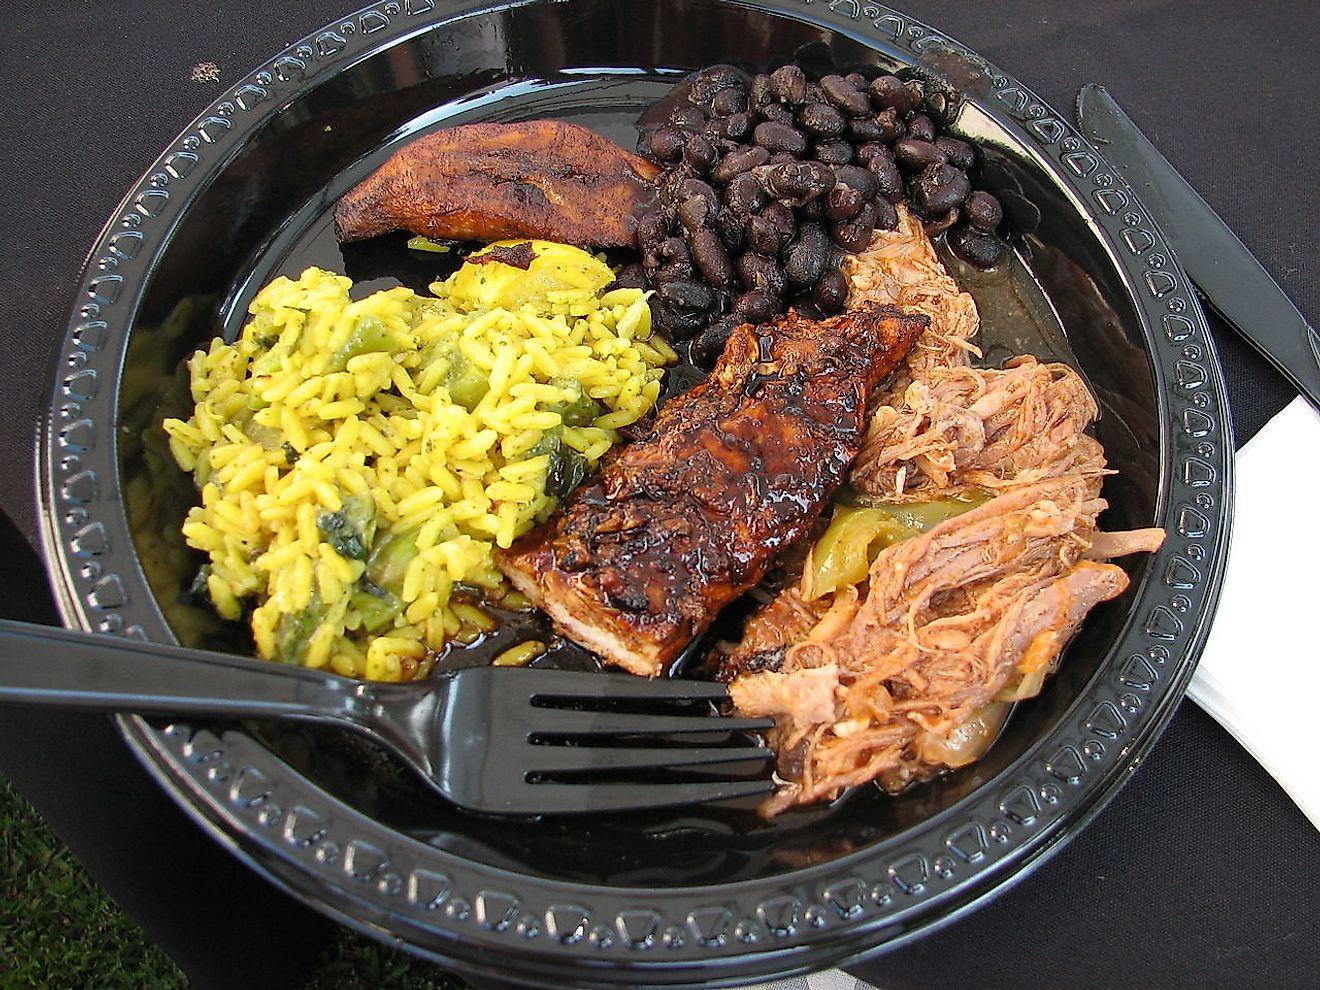 A typical Cuban dinner - Shredded beef, jerk chicken, black beans and plantains. Image credit: Mulling it Over/Wikimedia.org